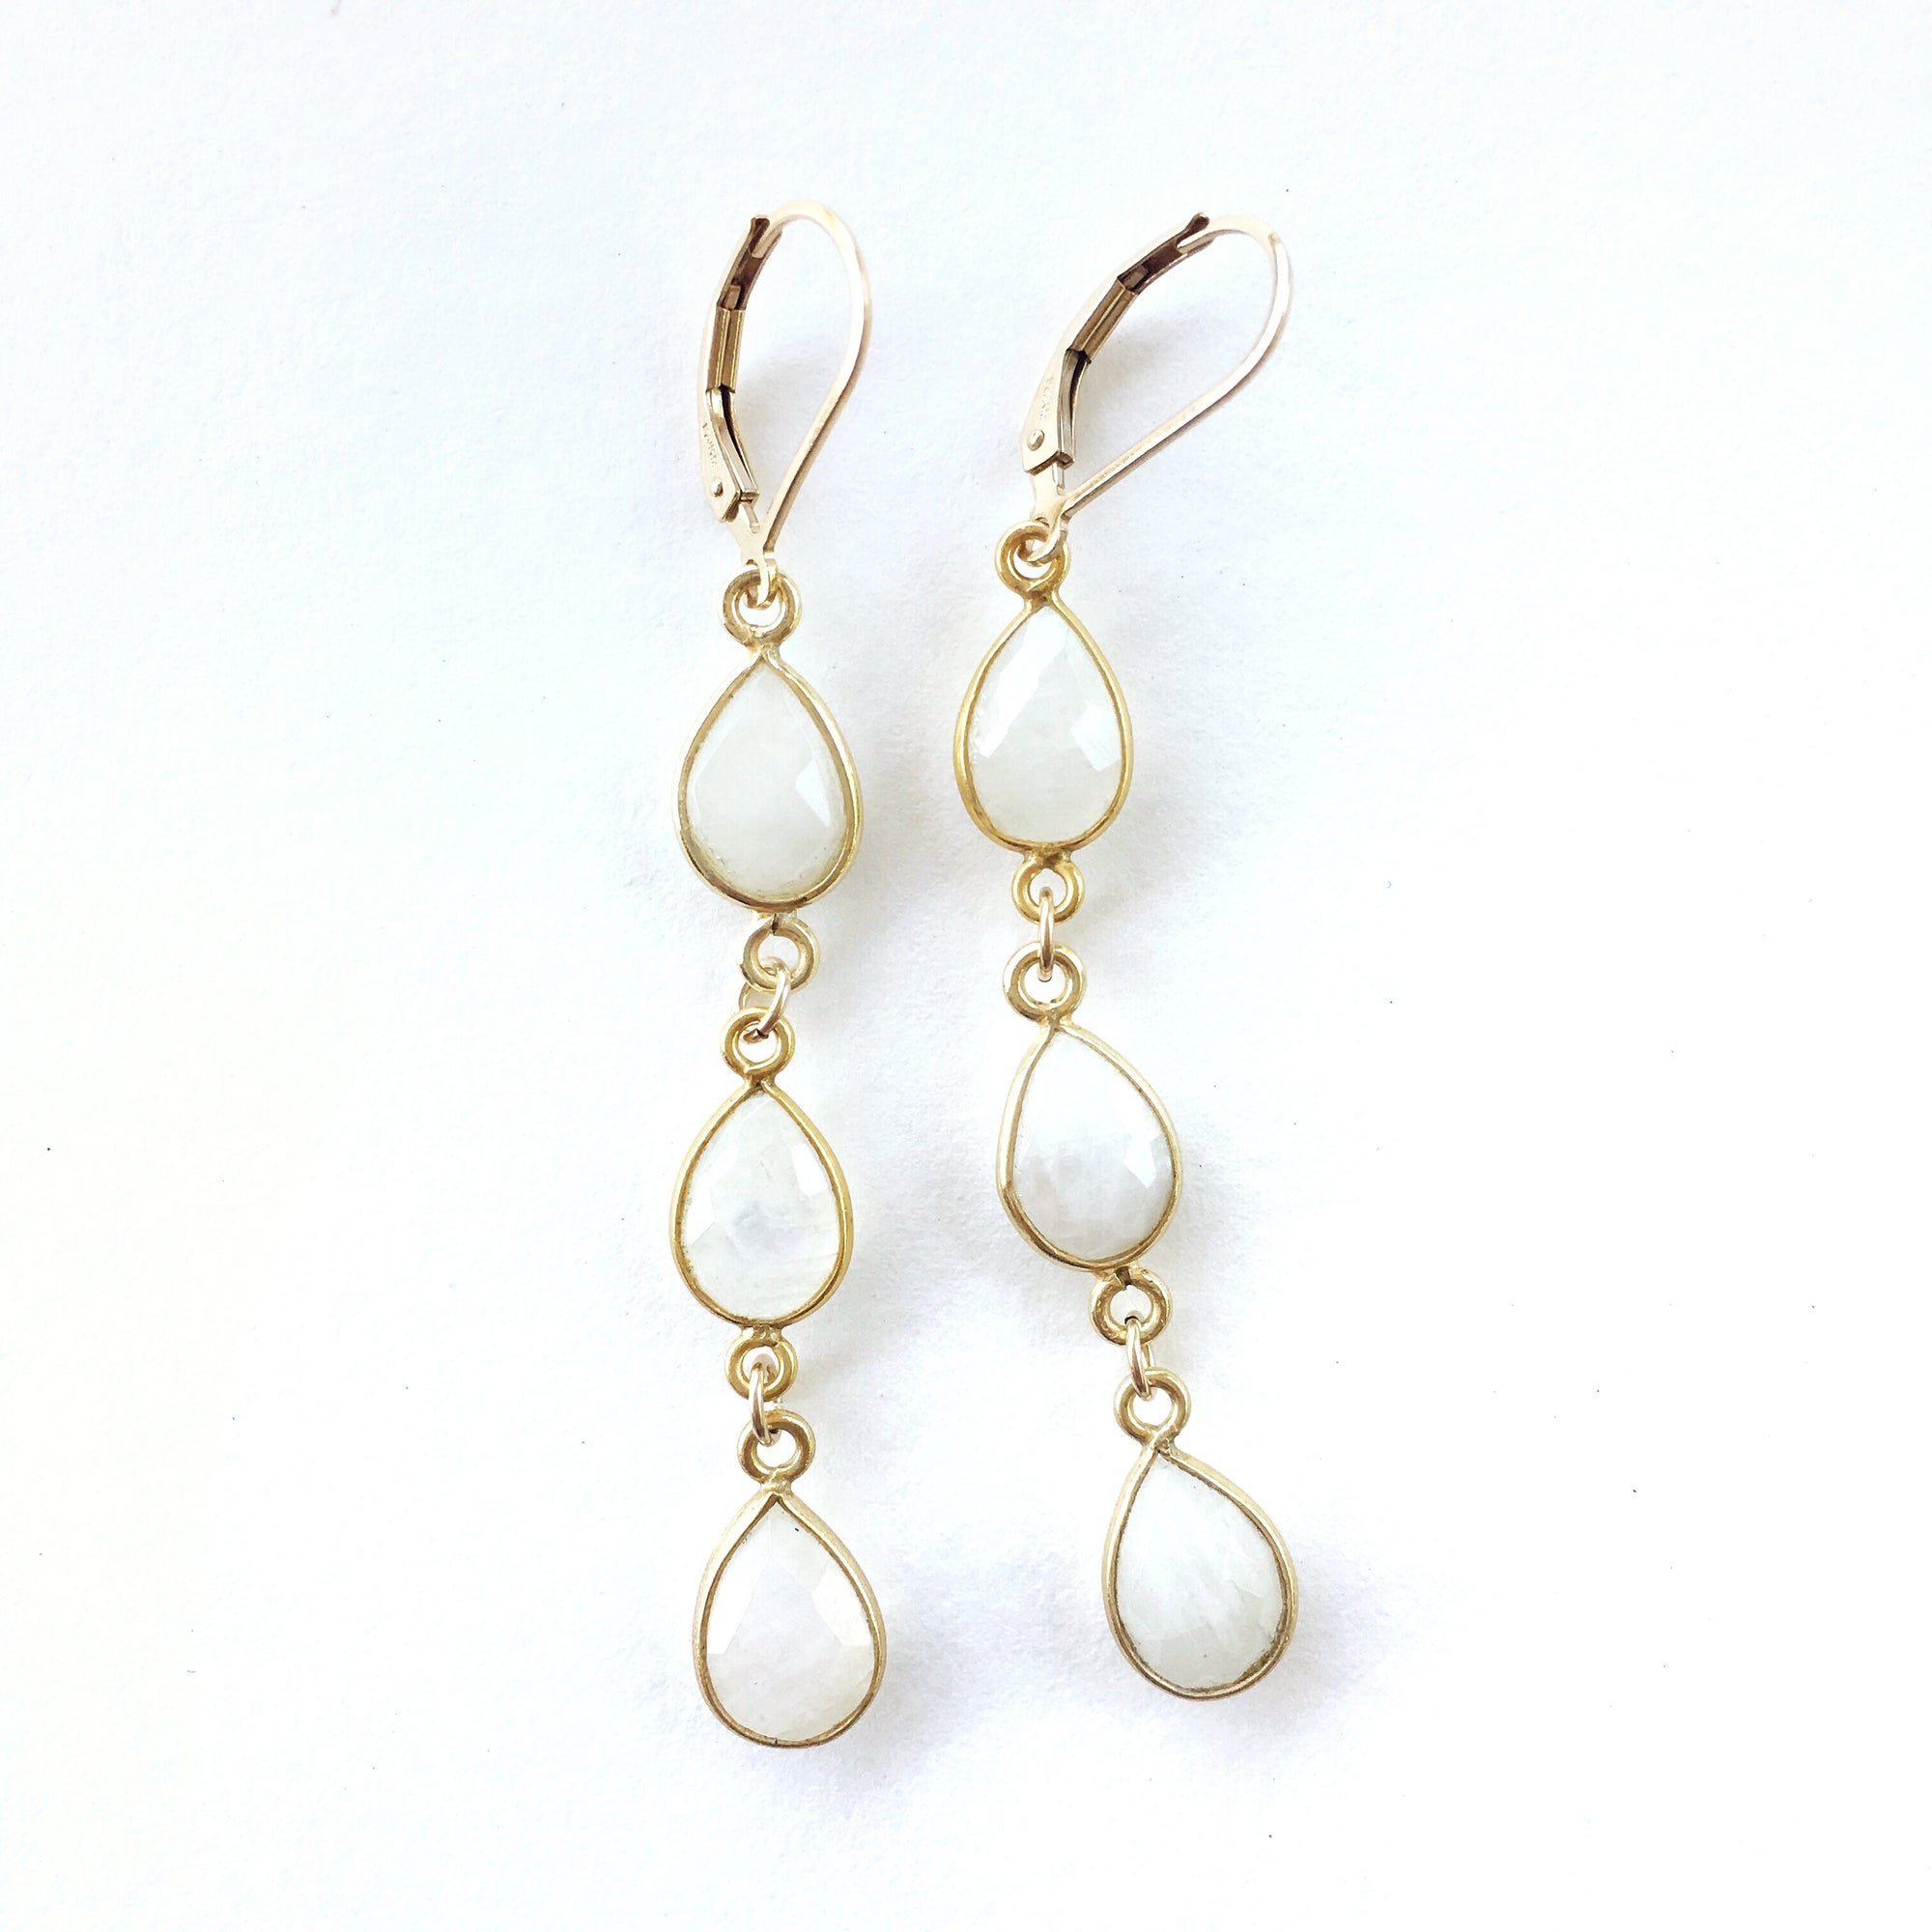 Hamptons Moonstone Earrings